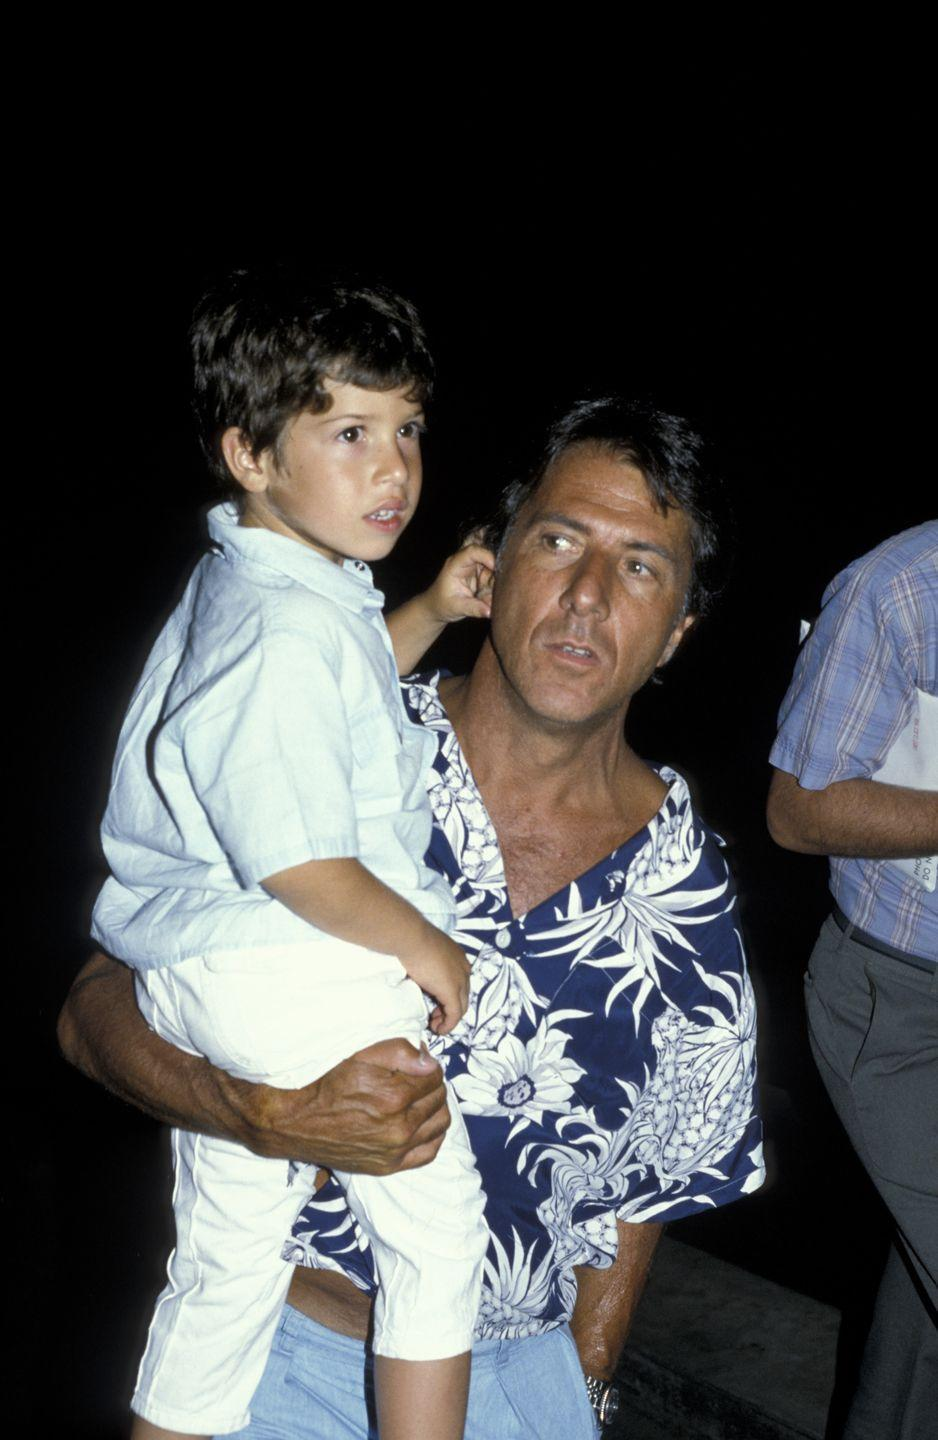 <p>Dustin Hoffman proves that the '80s were a great time for the chest hair trend. The actor showed his off in a patterned Hawaiian shirt, while carrying his son.</p>